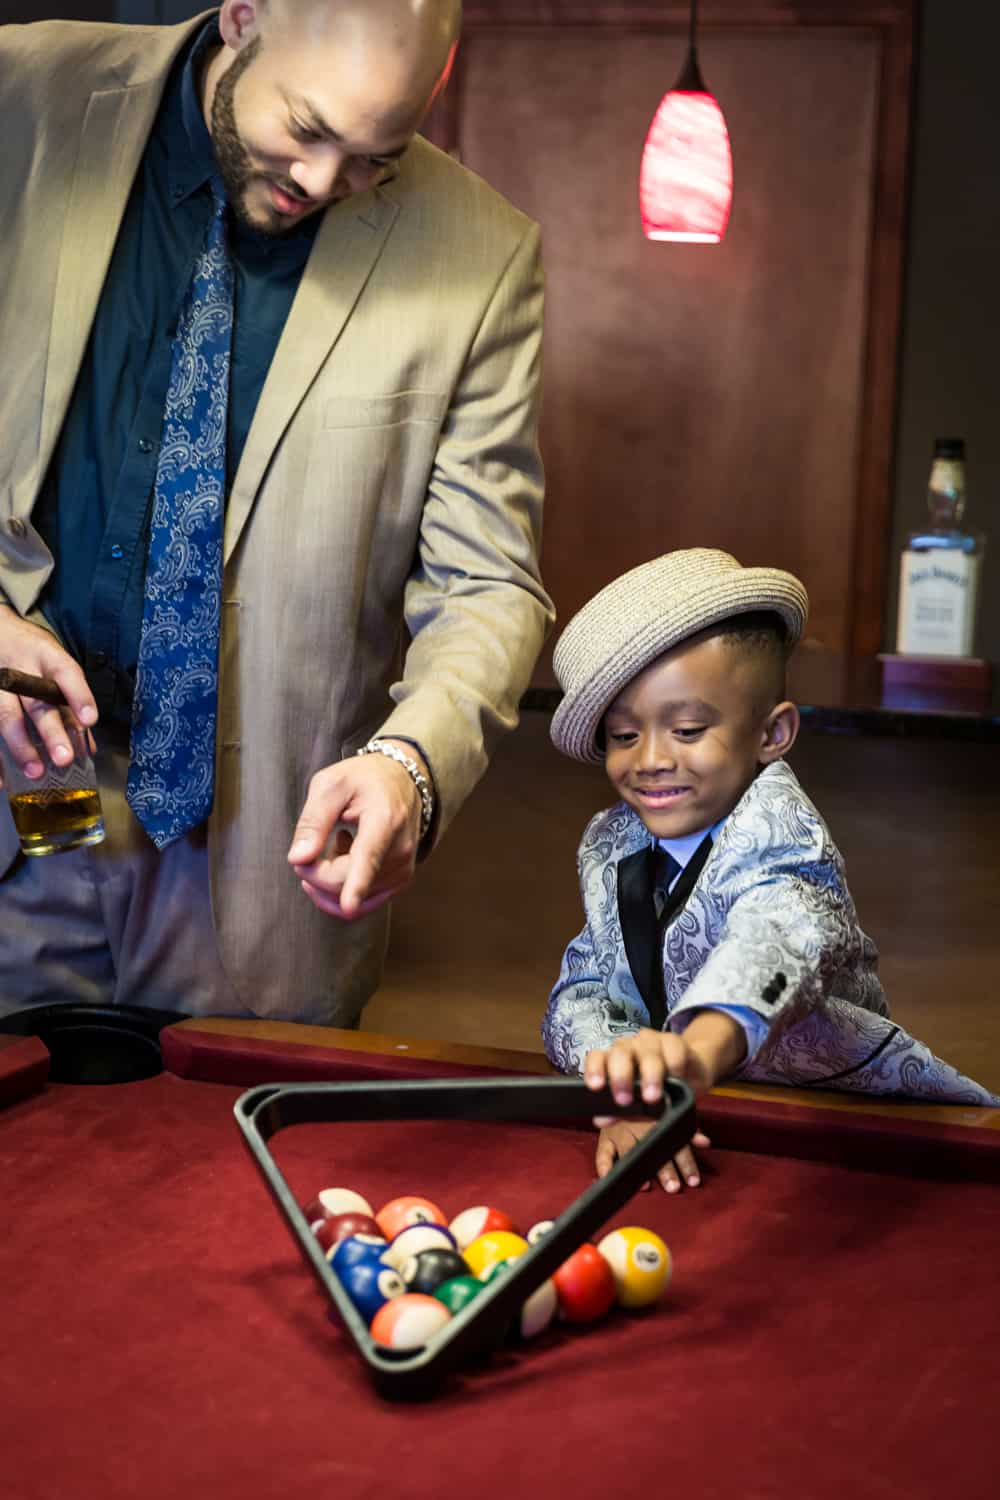 Man helping little boy learn to rack pool balls during a family reunion portrait